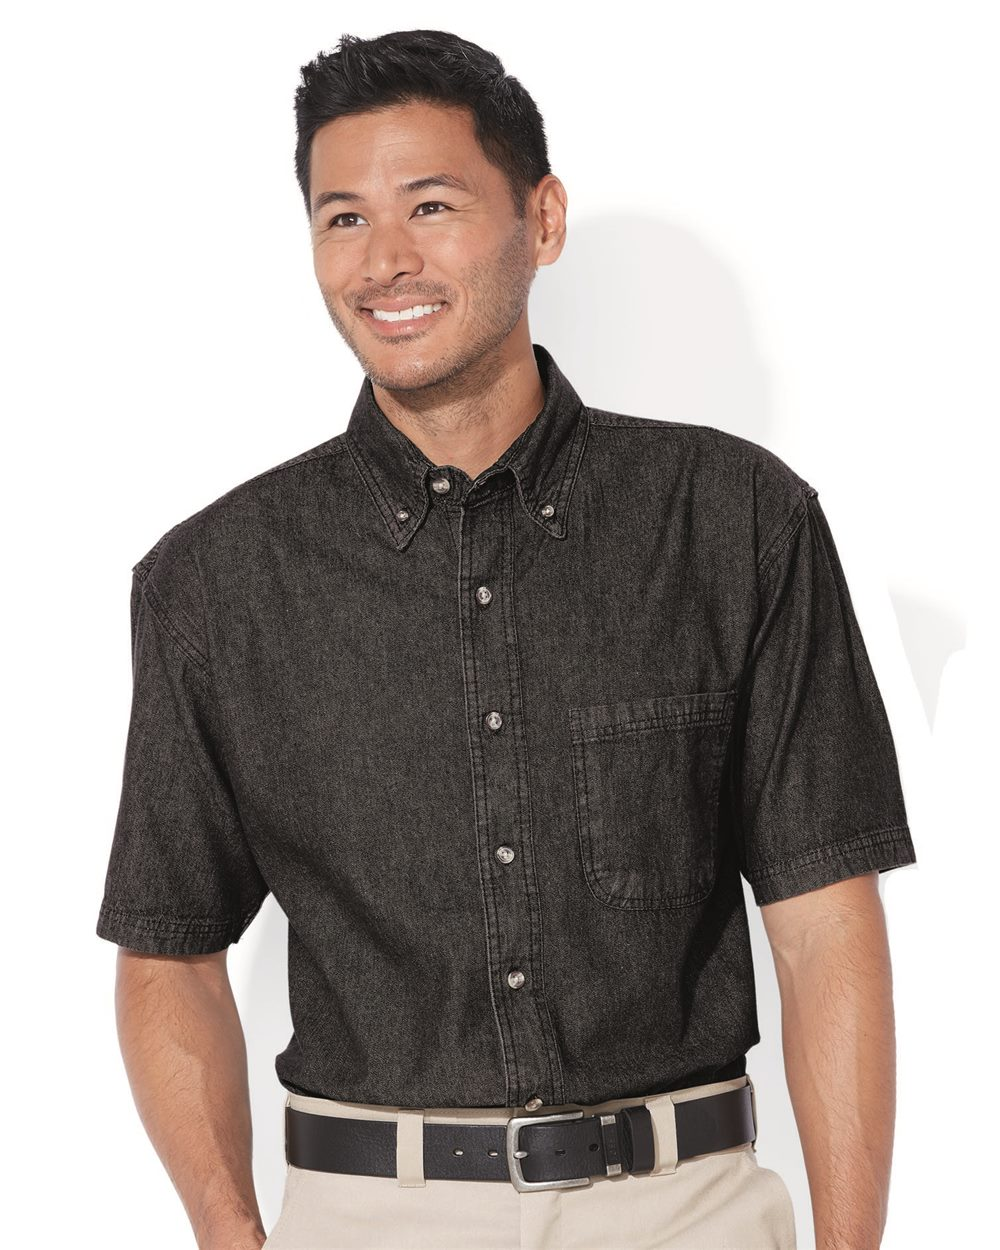 Sierra Pacific 0211 Short Sleeve Denim